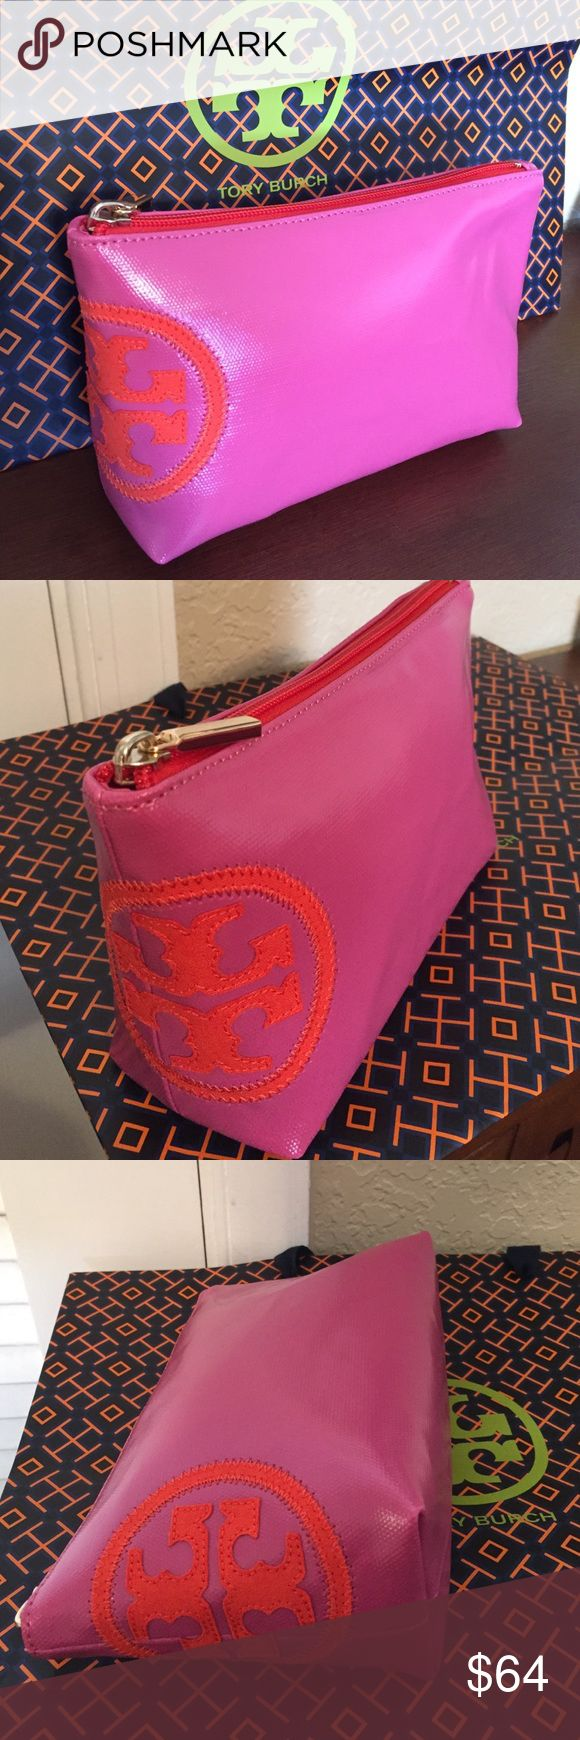 "🆕Tory Burch ""Beach Dipped"" slouchy Cosmetic case. Sooo cute this Coated Canvas cosmetic case is in Fiesta (Hot Pink) and Poppy Red. Inside has matching jacquard lining and slip pocket. Lots of room to hold all your beauty essentials. On the outside has the Double-T canvas logo that wraps around the side in contrasting color. Top zipper color matches side Double-T logo. Gold hardware. Approximate measurements: 9"" L x 5"" H x 3"" D. New, never used, with tag... Tory Burch Bags Cosmetic Bags…"